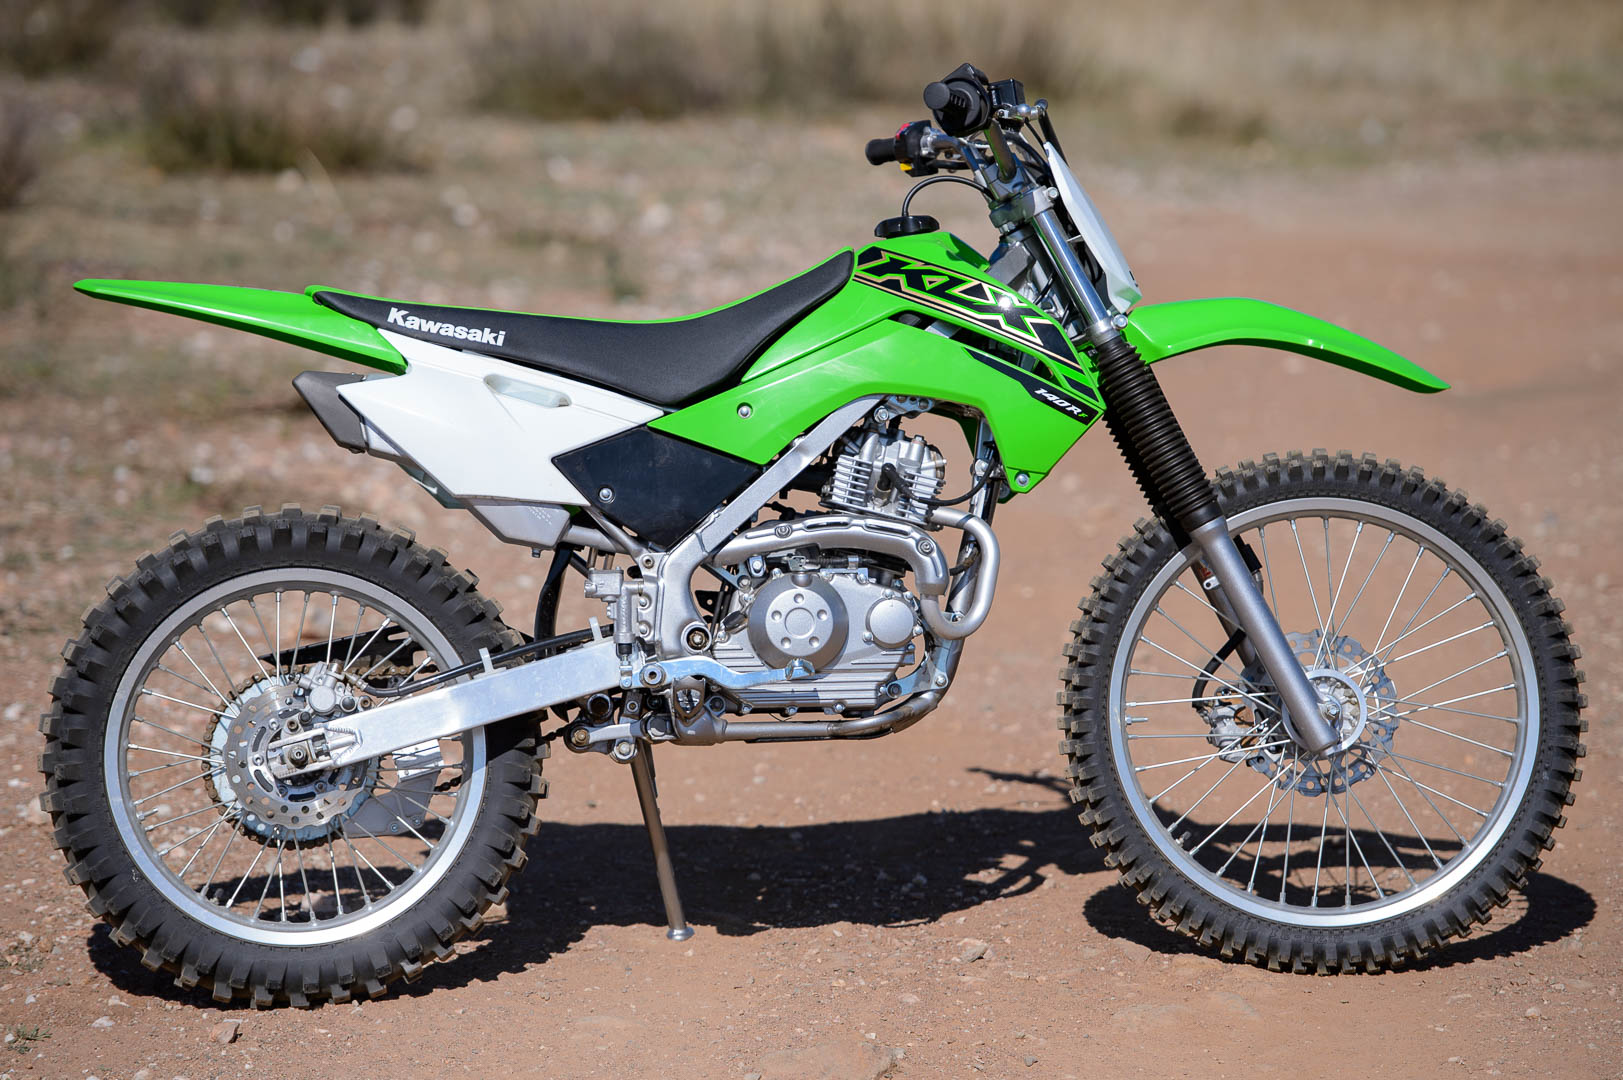 2021 Kawasaki KLX140R F Review: MSRP